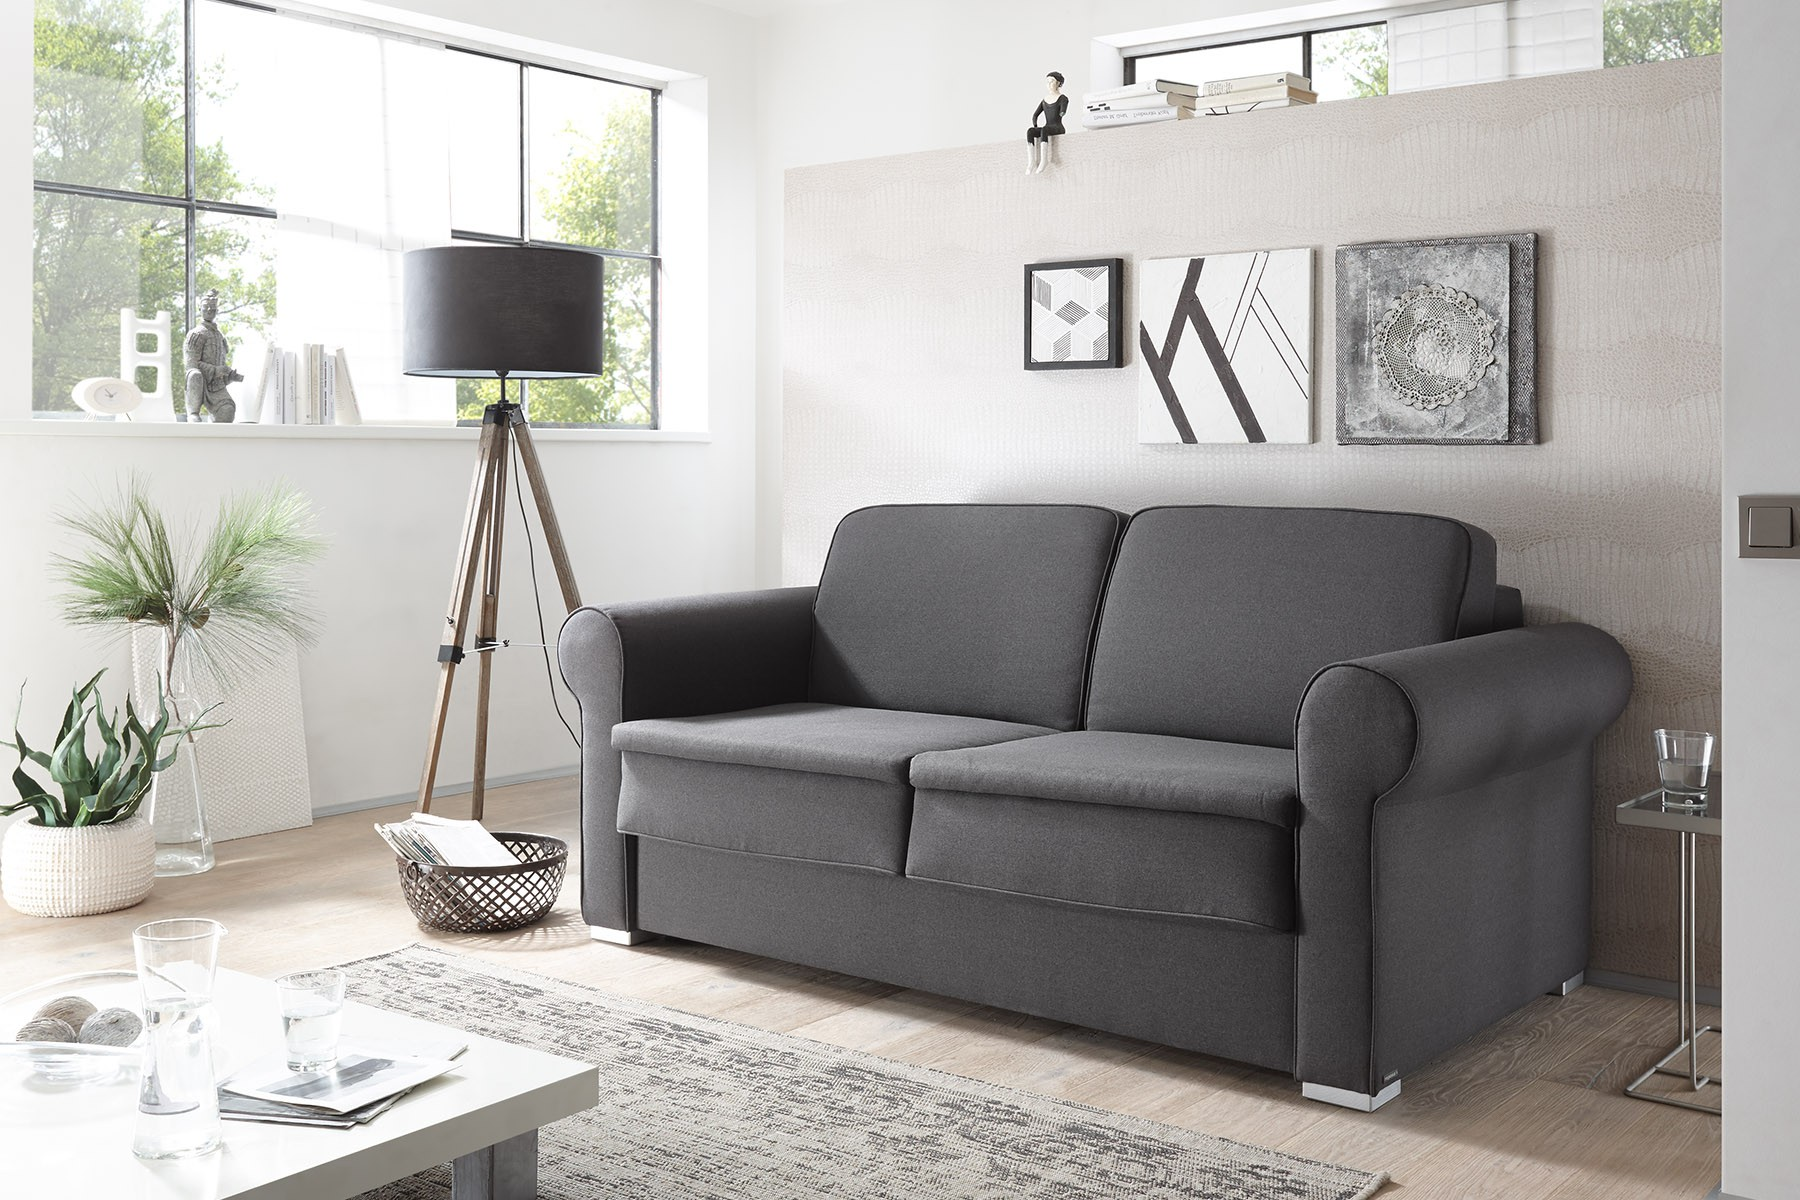 Bettsofa Grau Bettsofa Grau Excellent Bettsofa Grau Schn Galerie